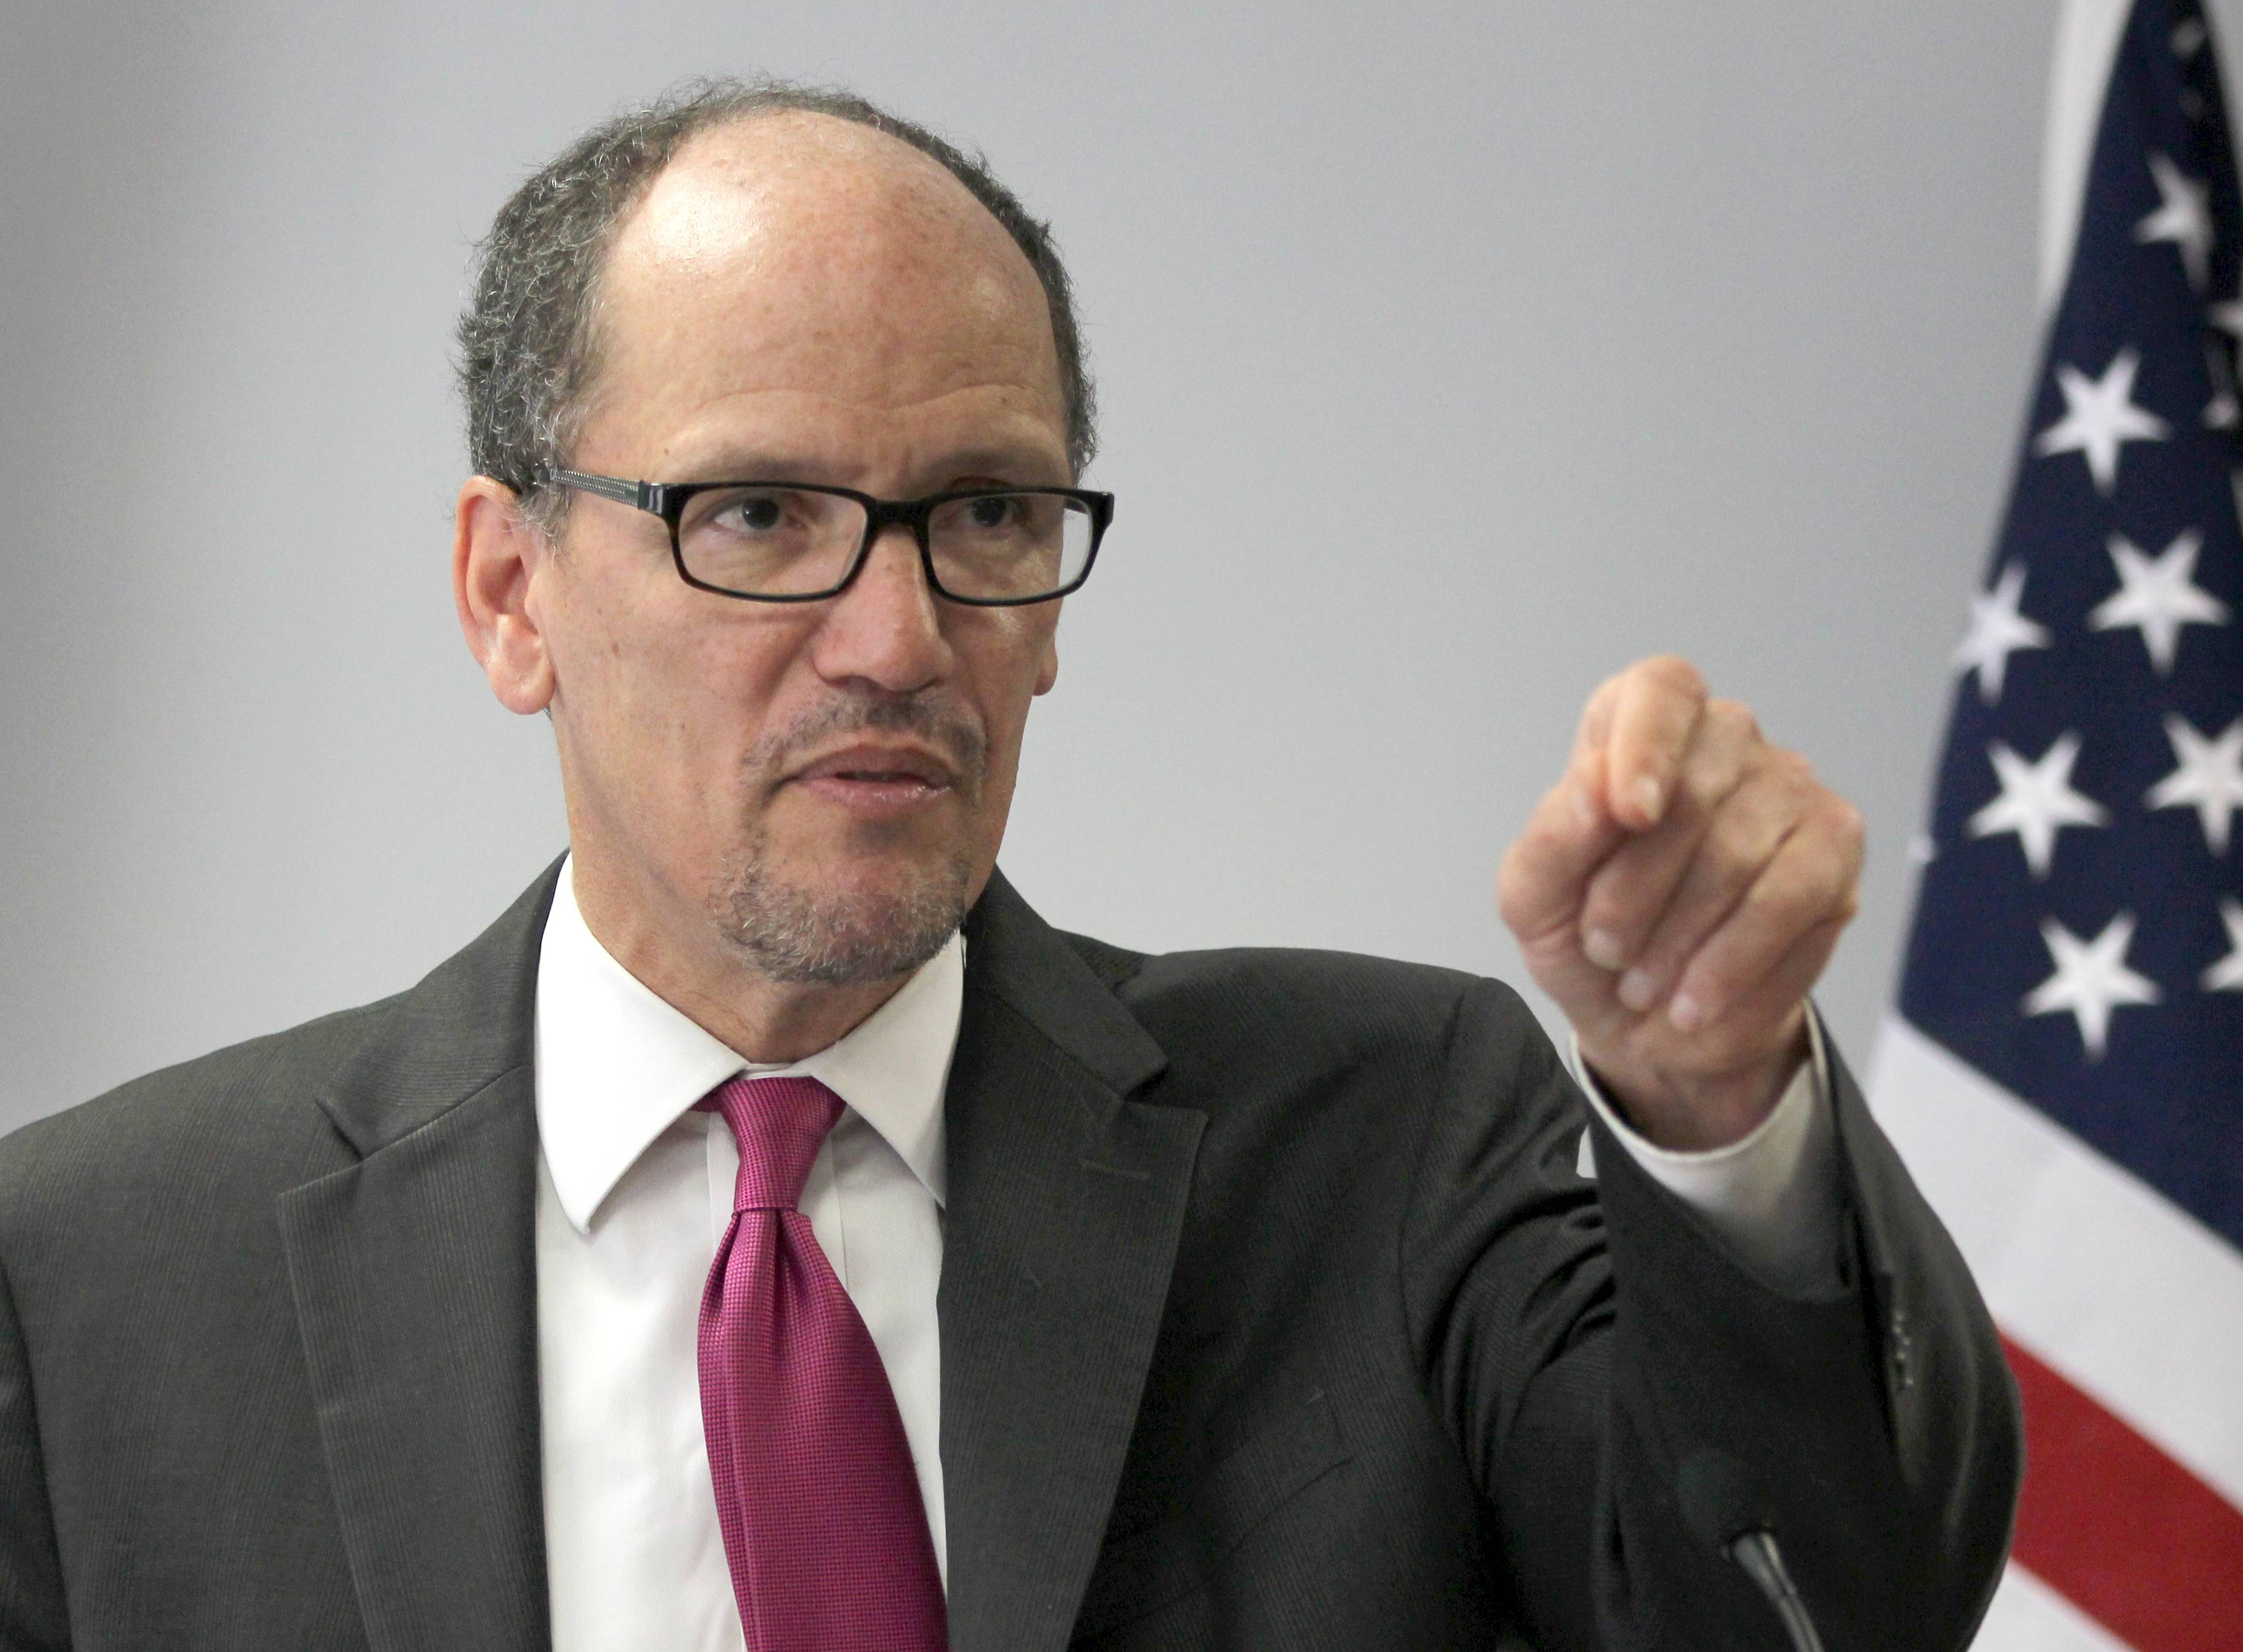 Labor Secretary Thomas E. Perez teamed up with the top Democrat on the House Education and Workforce Committee, to meet Monday with kitchen workers at a local restaurant and deliver a lunchtime plea for Congress to raise the federal minimum wage from $7.25 to $10.10.